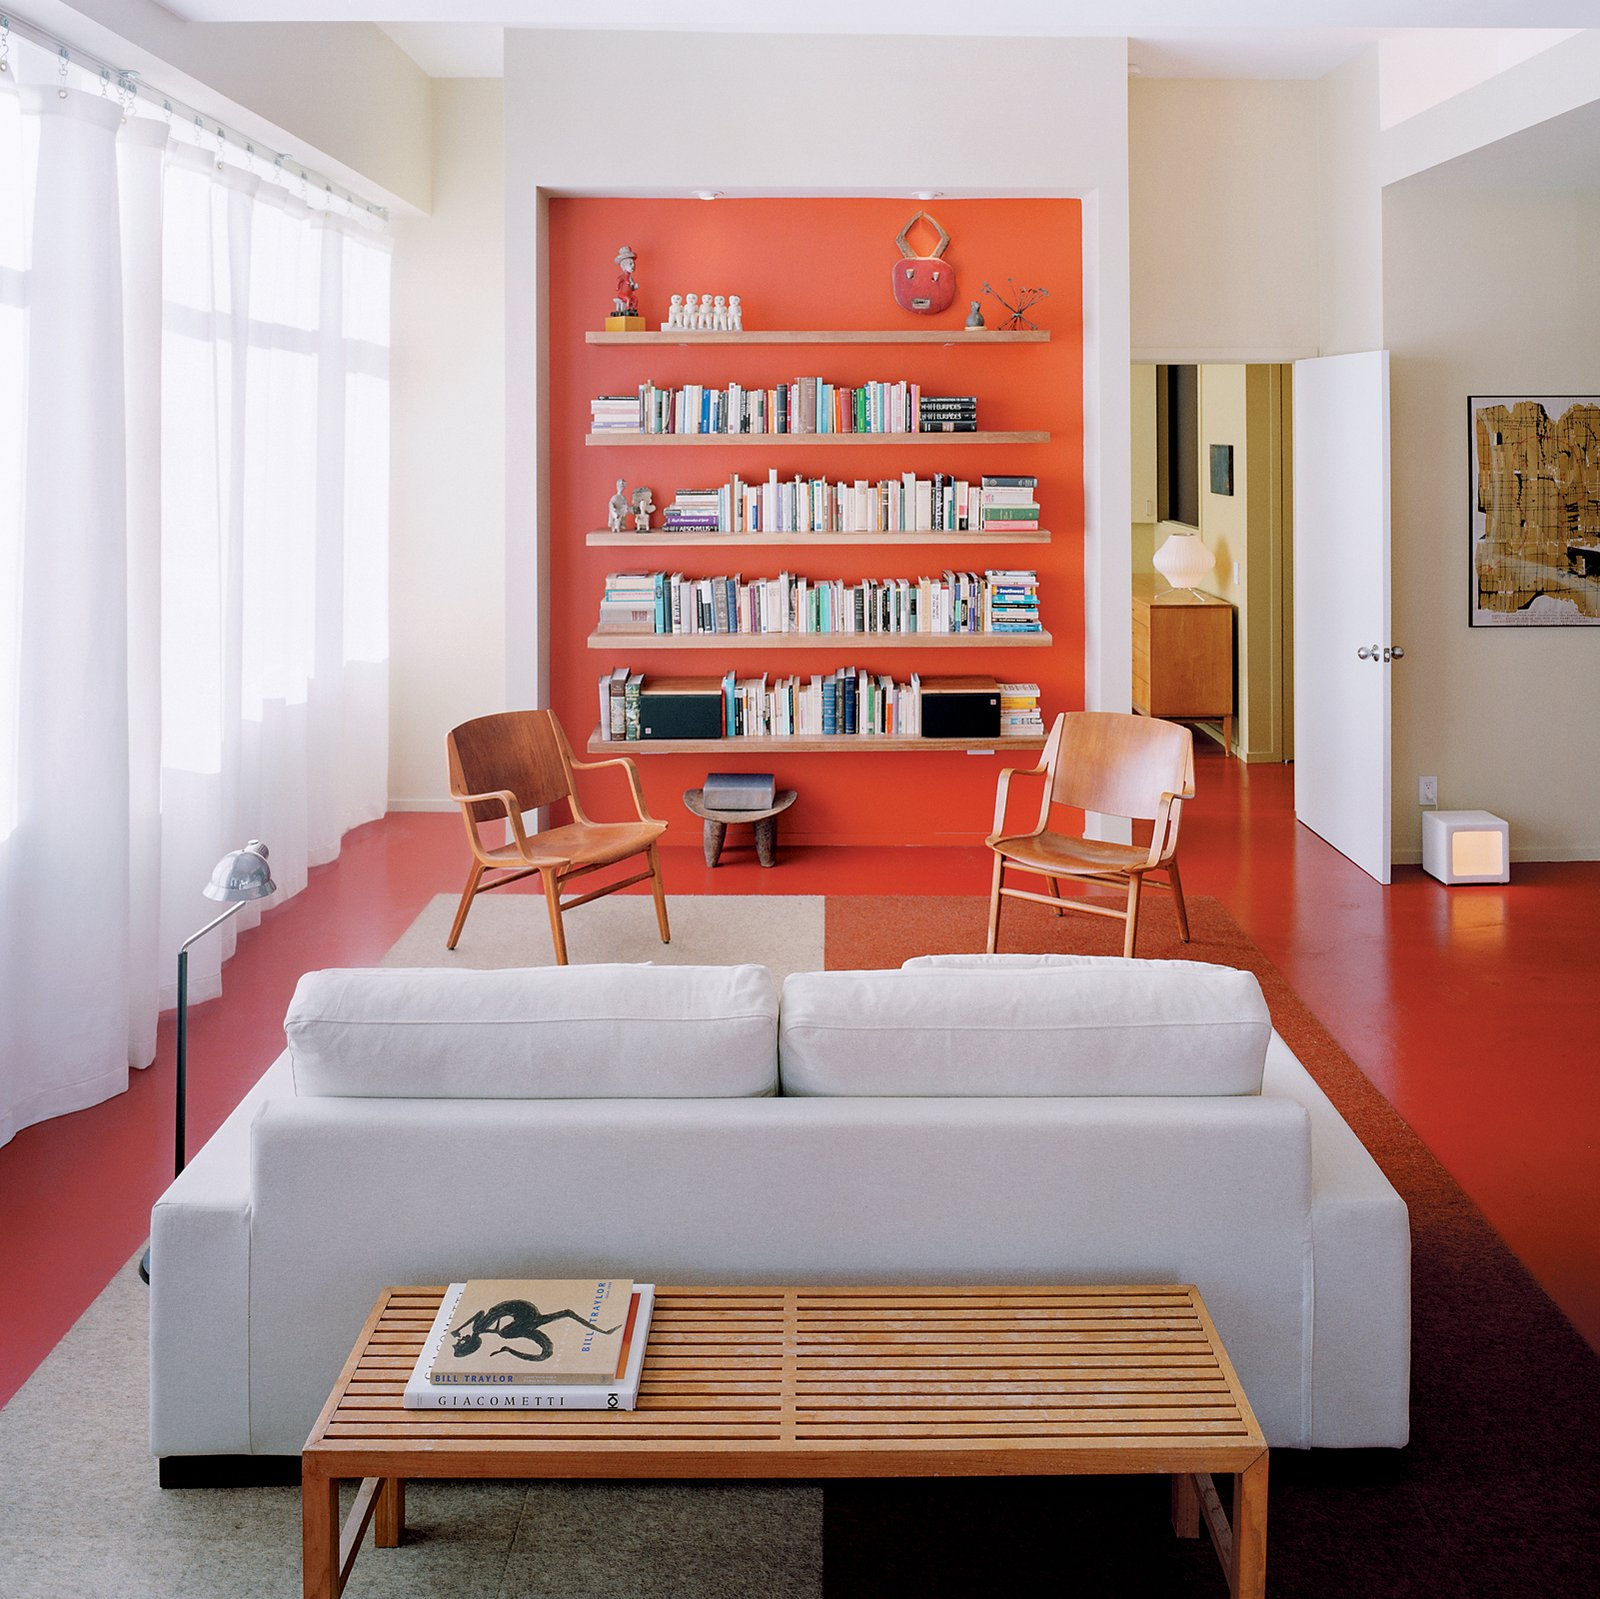 Architect Grant explains that the recessed orange wall with built-in storage shelving is a counterpoint to the view of Boston in the opposite direction.  Photo 13 of 21 in The Pantone Choice: Top 10 Colors for Spring 2017